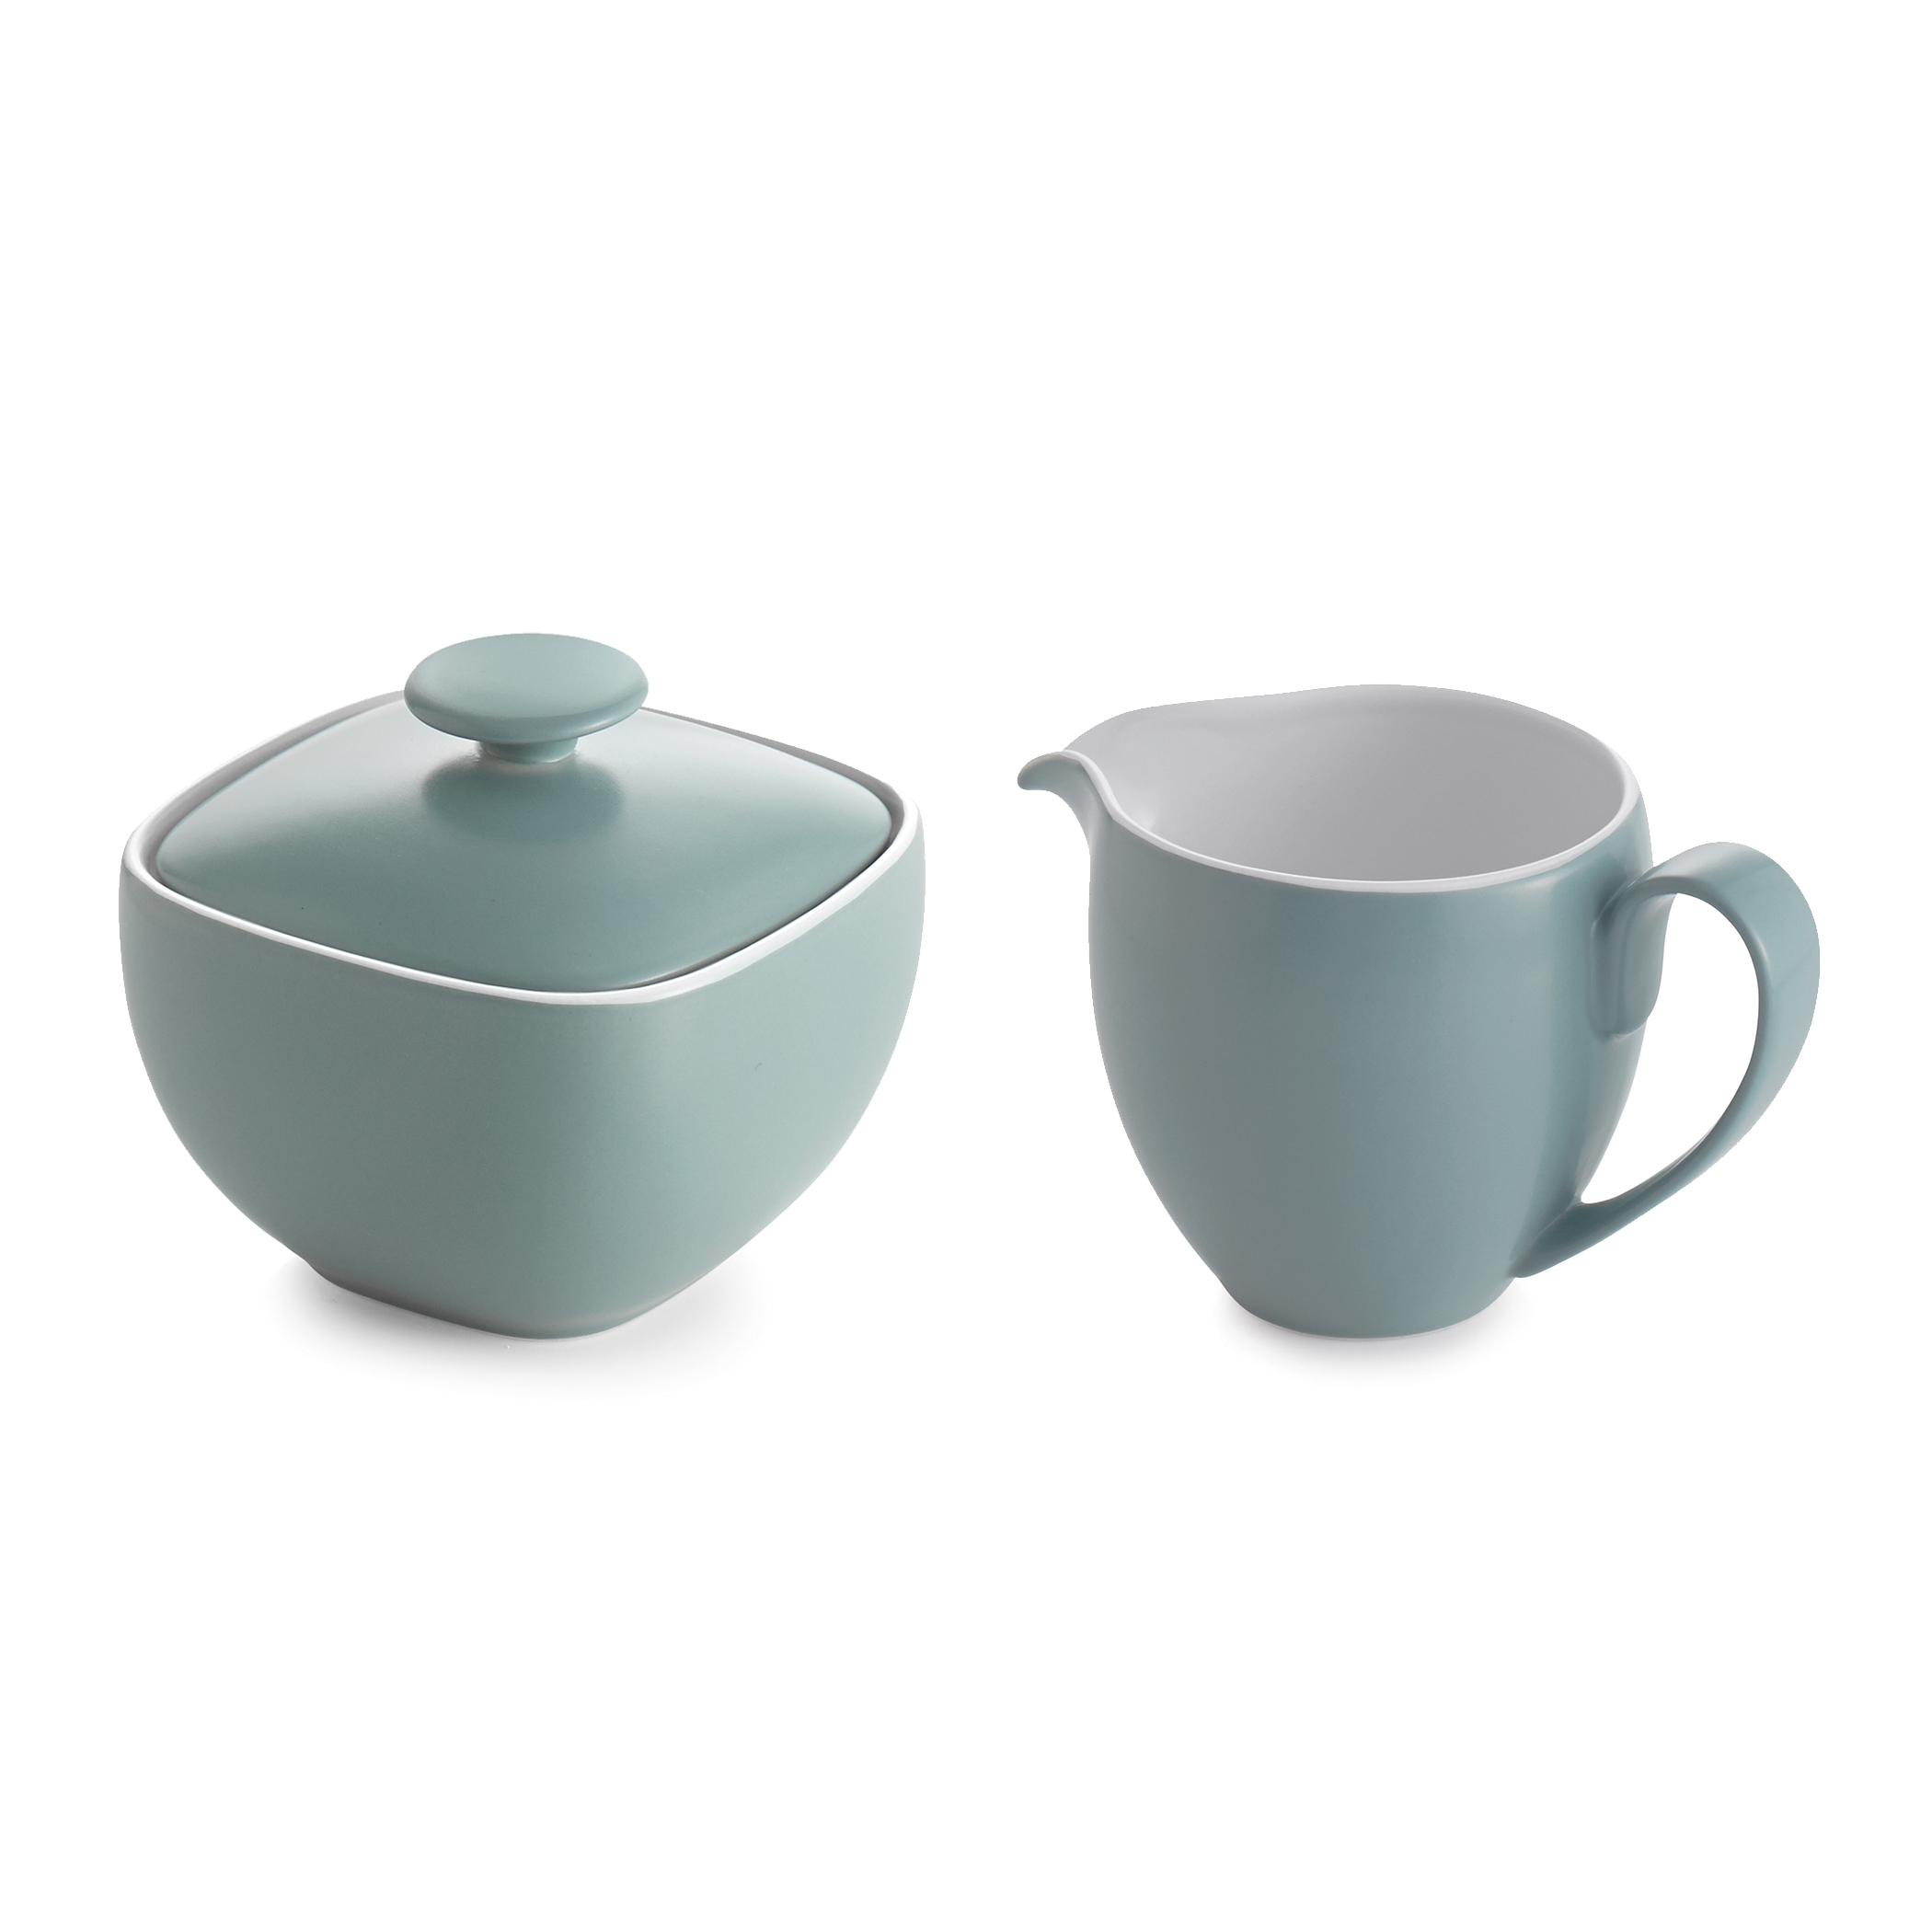 POP Sugar and Creamer Set - Ocean image number 0